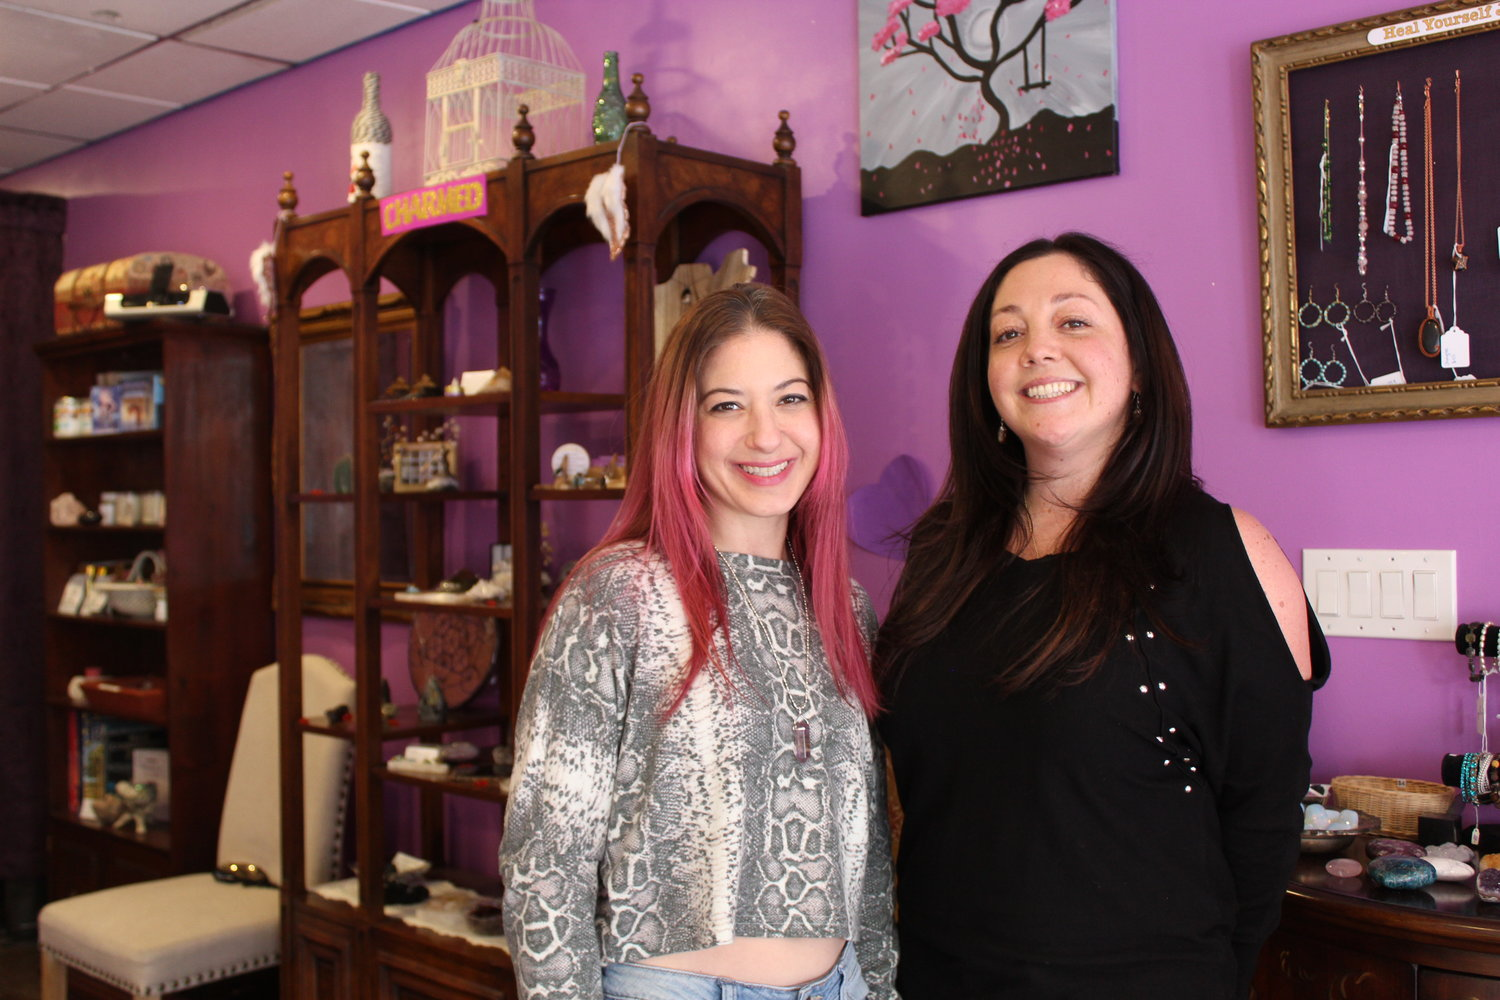 East Meadow residents Ilana Slavin, left, and Lori McGuire, have relocated their business, Charmed The Eclectic Healing Shoppe, to Bedford Avenue in Bellmore Village.